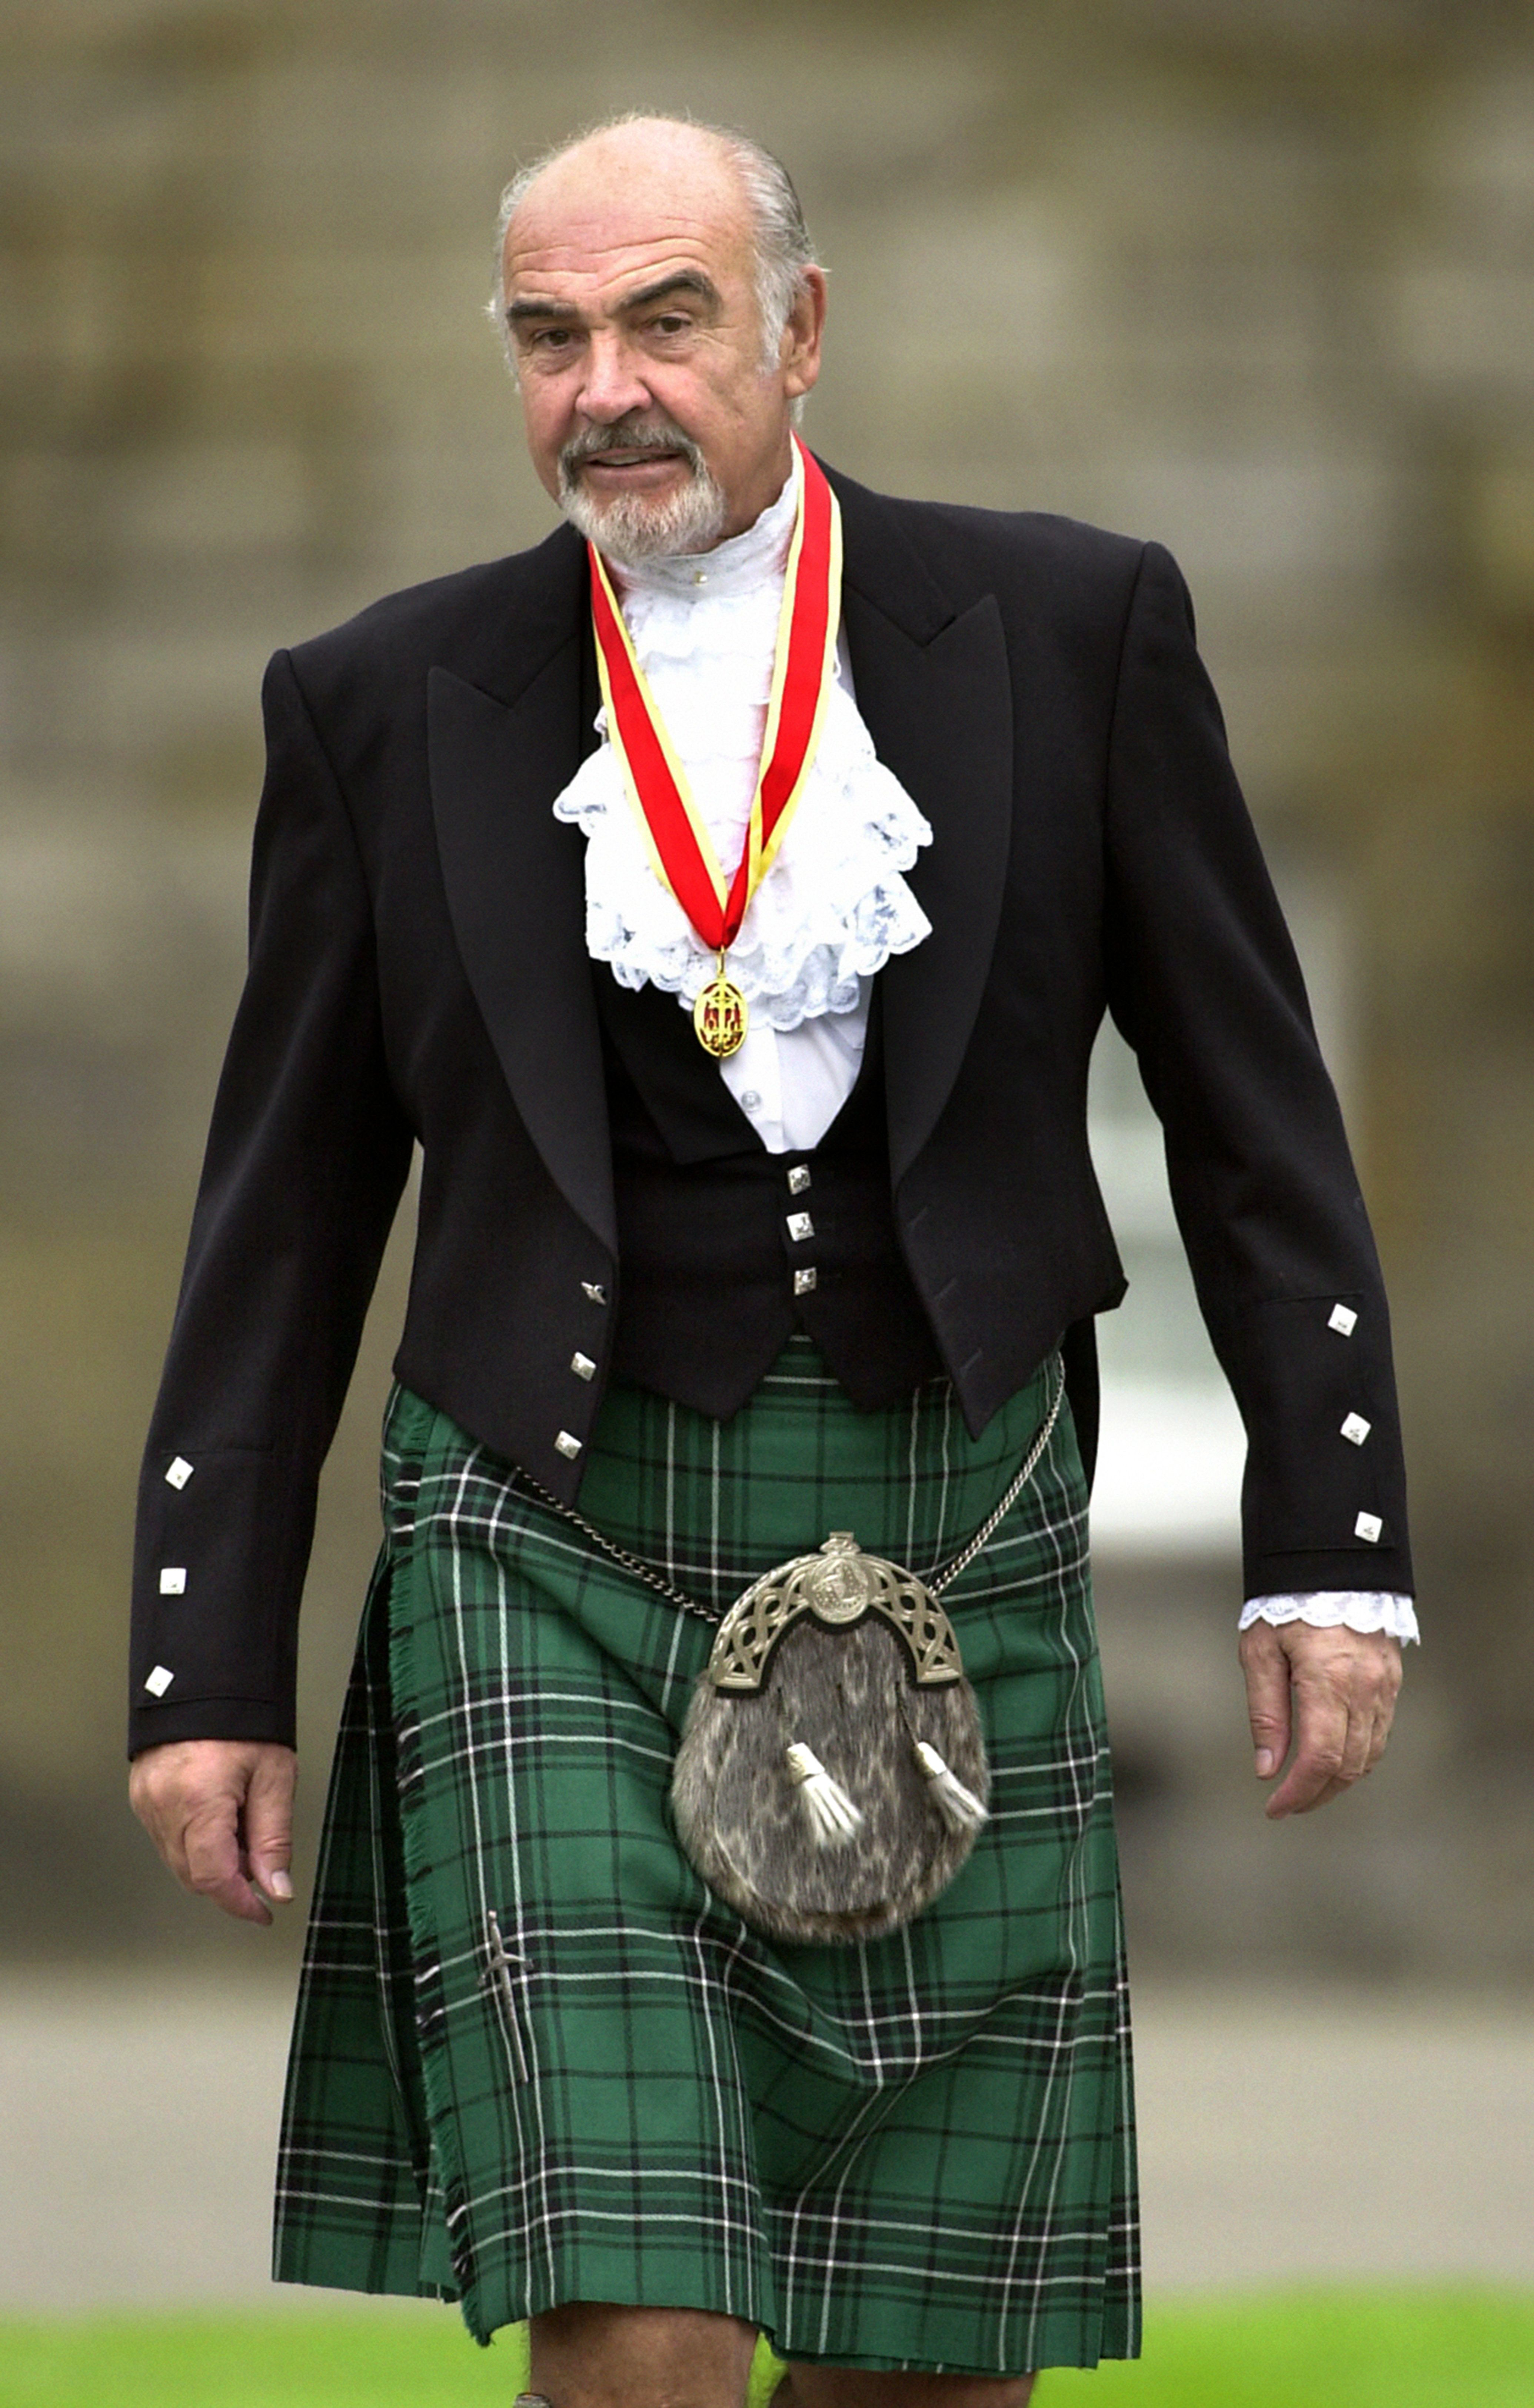 Connery wearsfull Highland dress and his medal after he was formally knighted by the queenin July 2000.